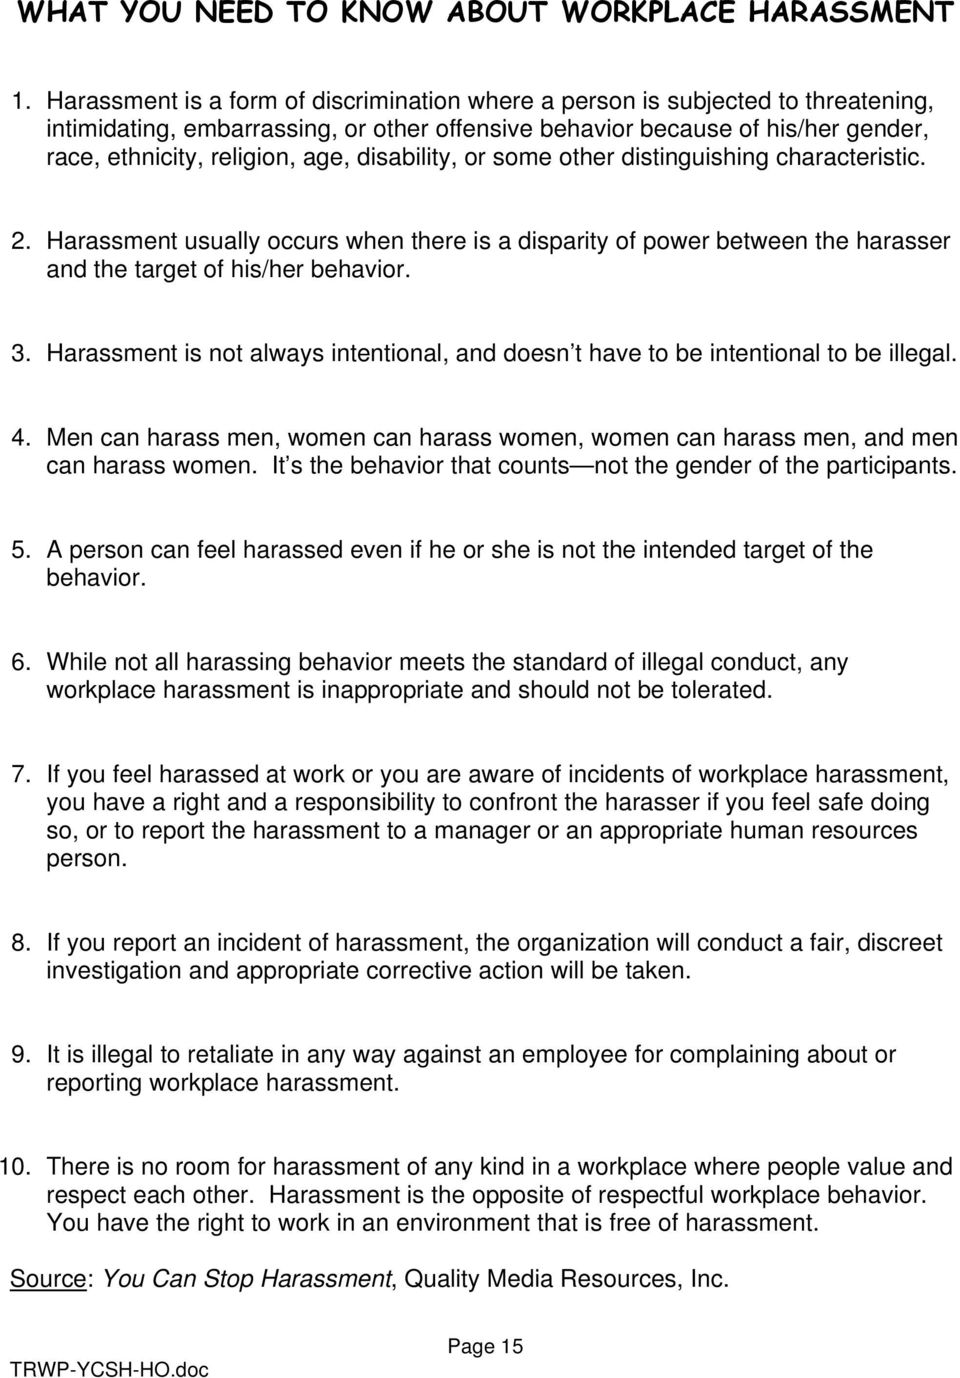 disability, or some other distinguishing characteristic. 2. Harassment usually occurs when there is a disparity of power between the harasser and the target of his/her behavior. 3.